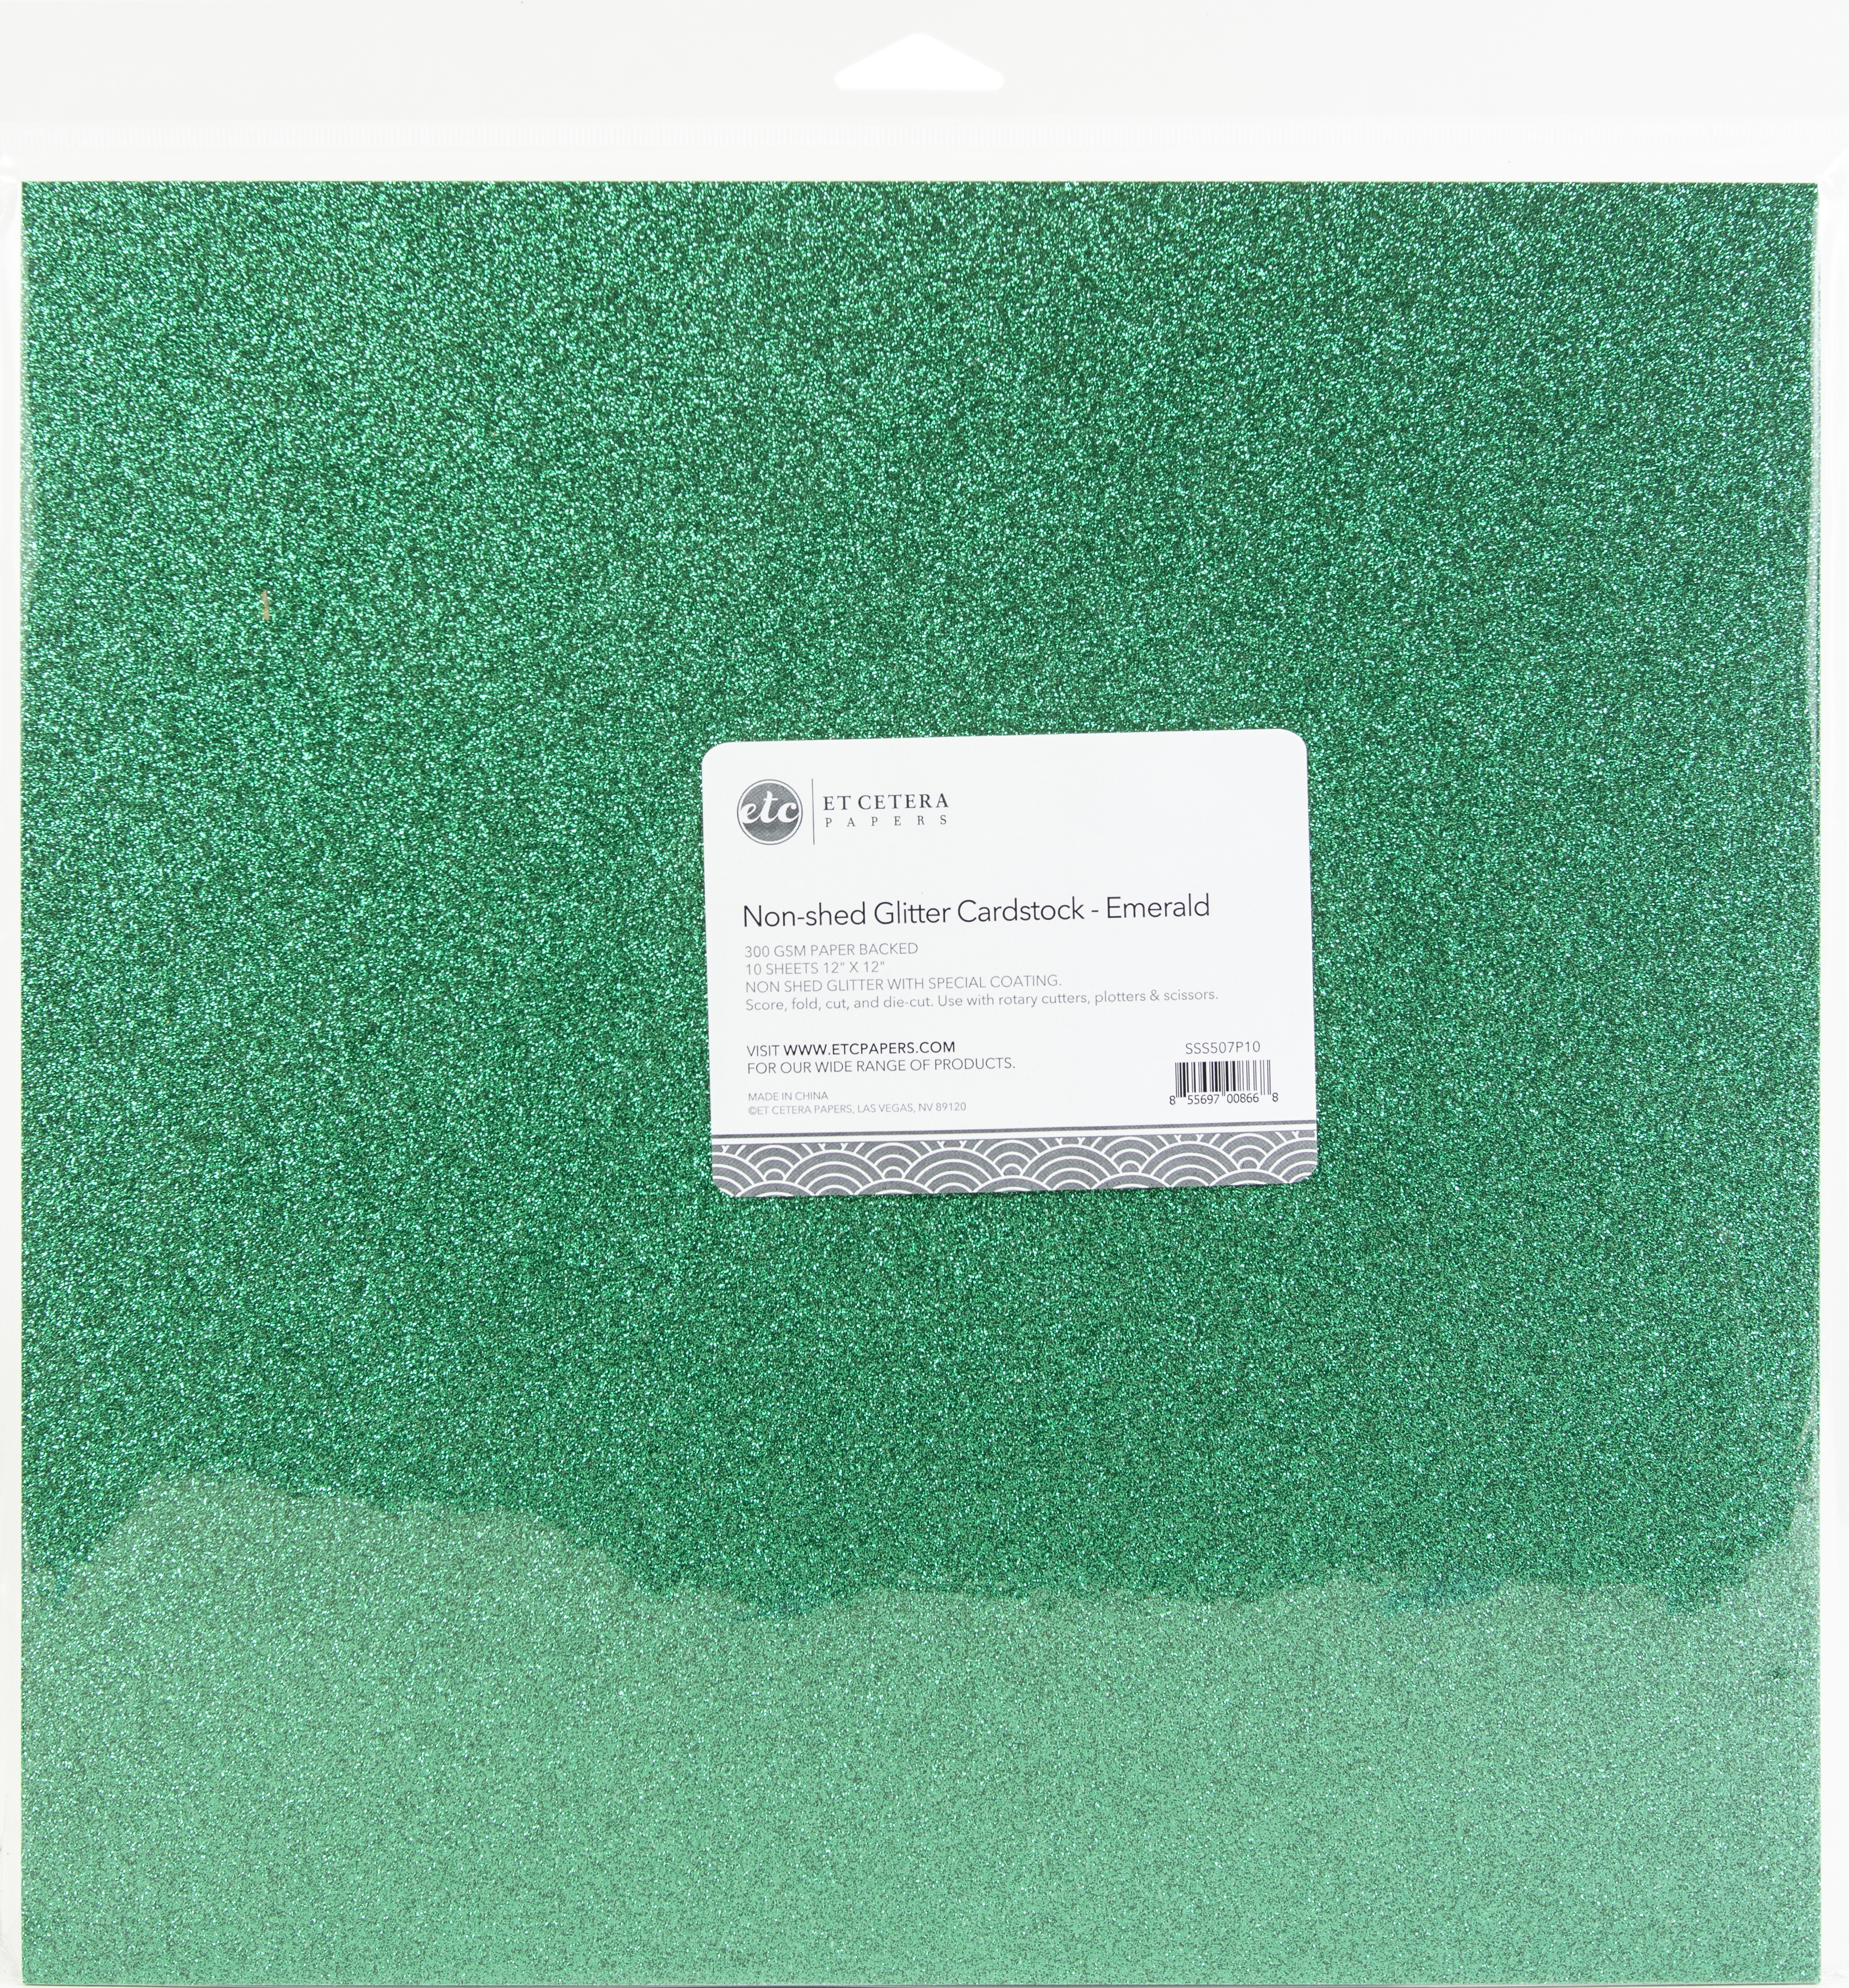 Non-Shed Glitter Cardstock - Emerald, 12x12